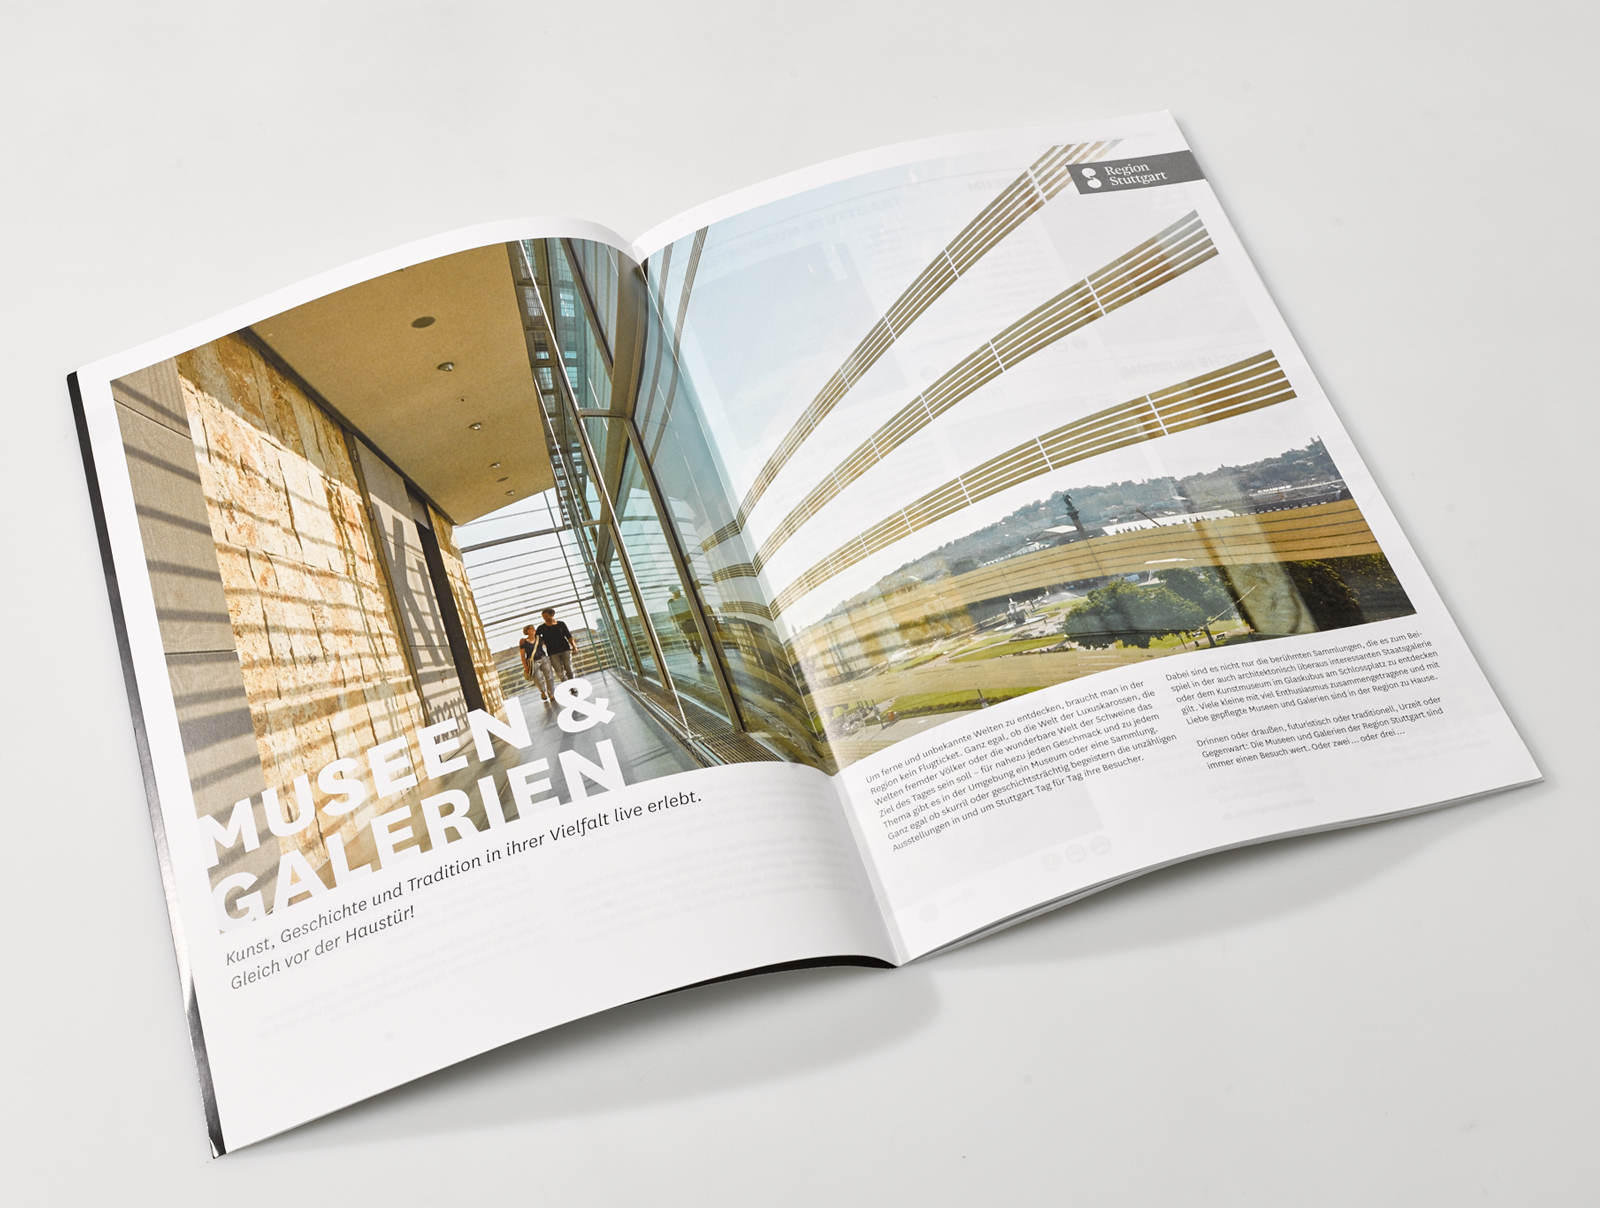 Stuttgart Marketing GmbH / Region Stuttgart